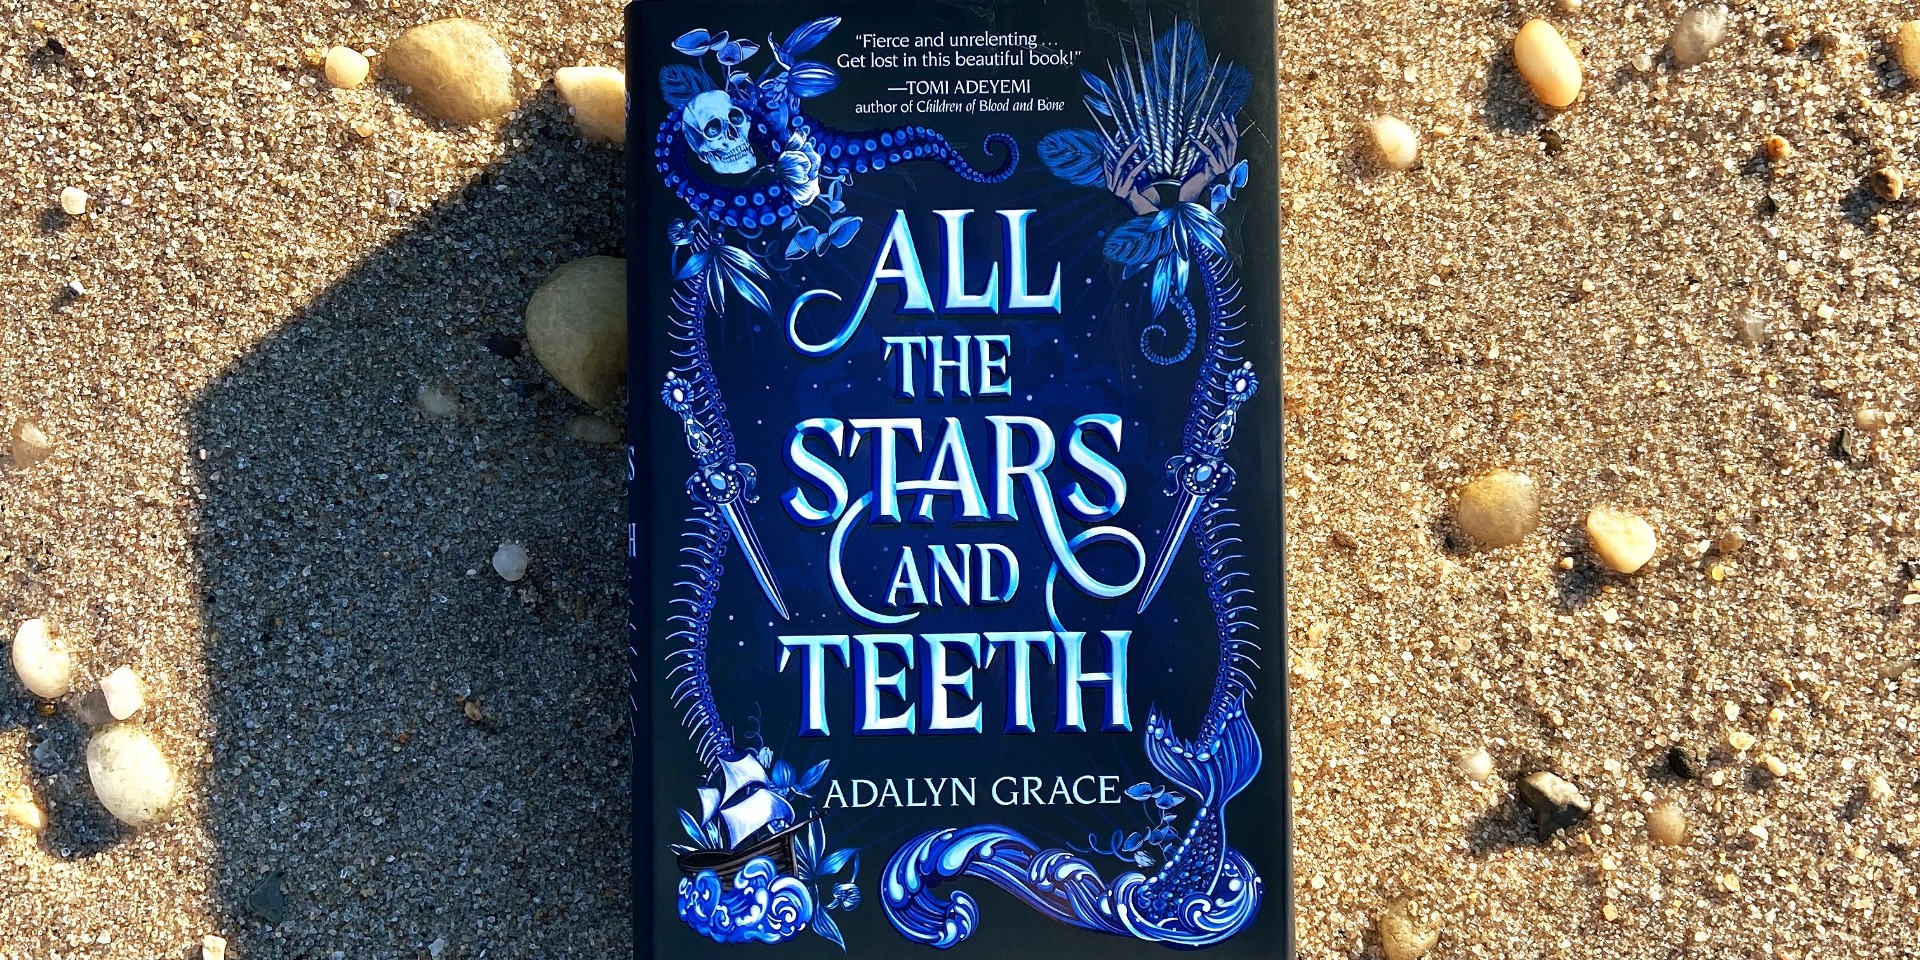 """Have you heard of """"All the Stars and Teeth"""", Adalyn Grace's debut novel about fearless girls?"""